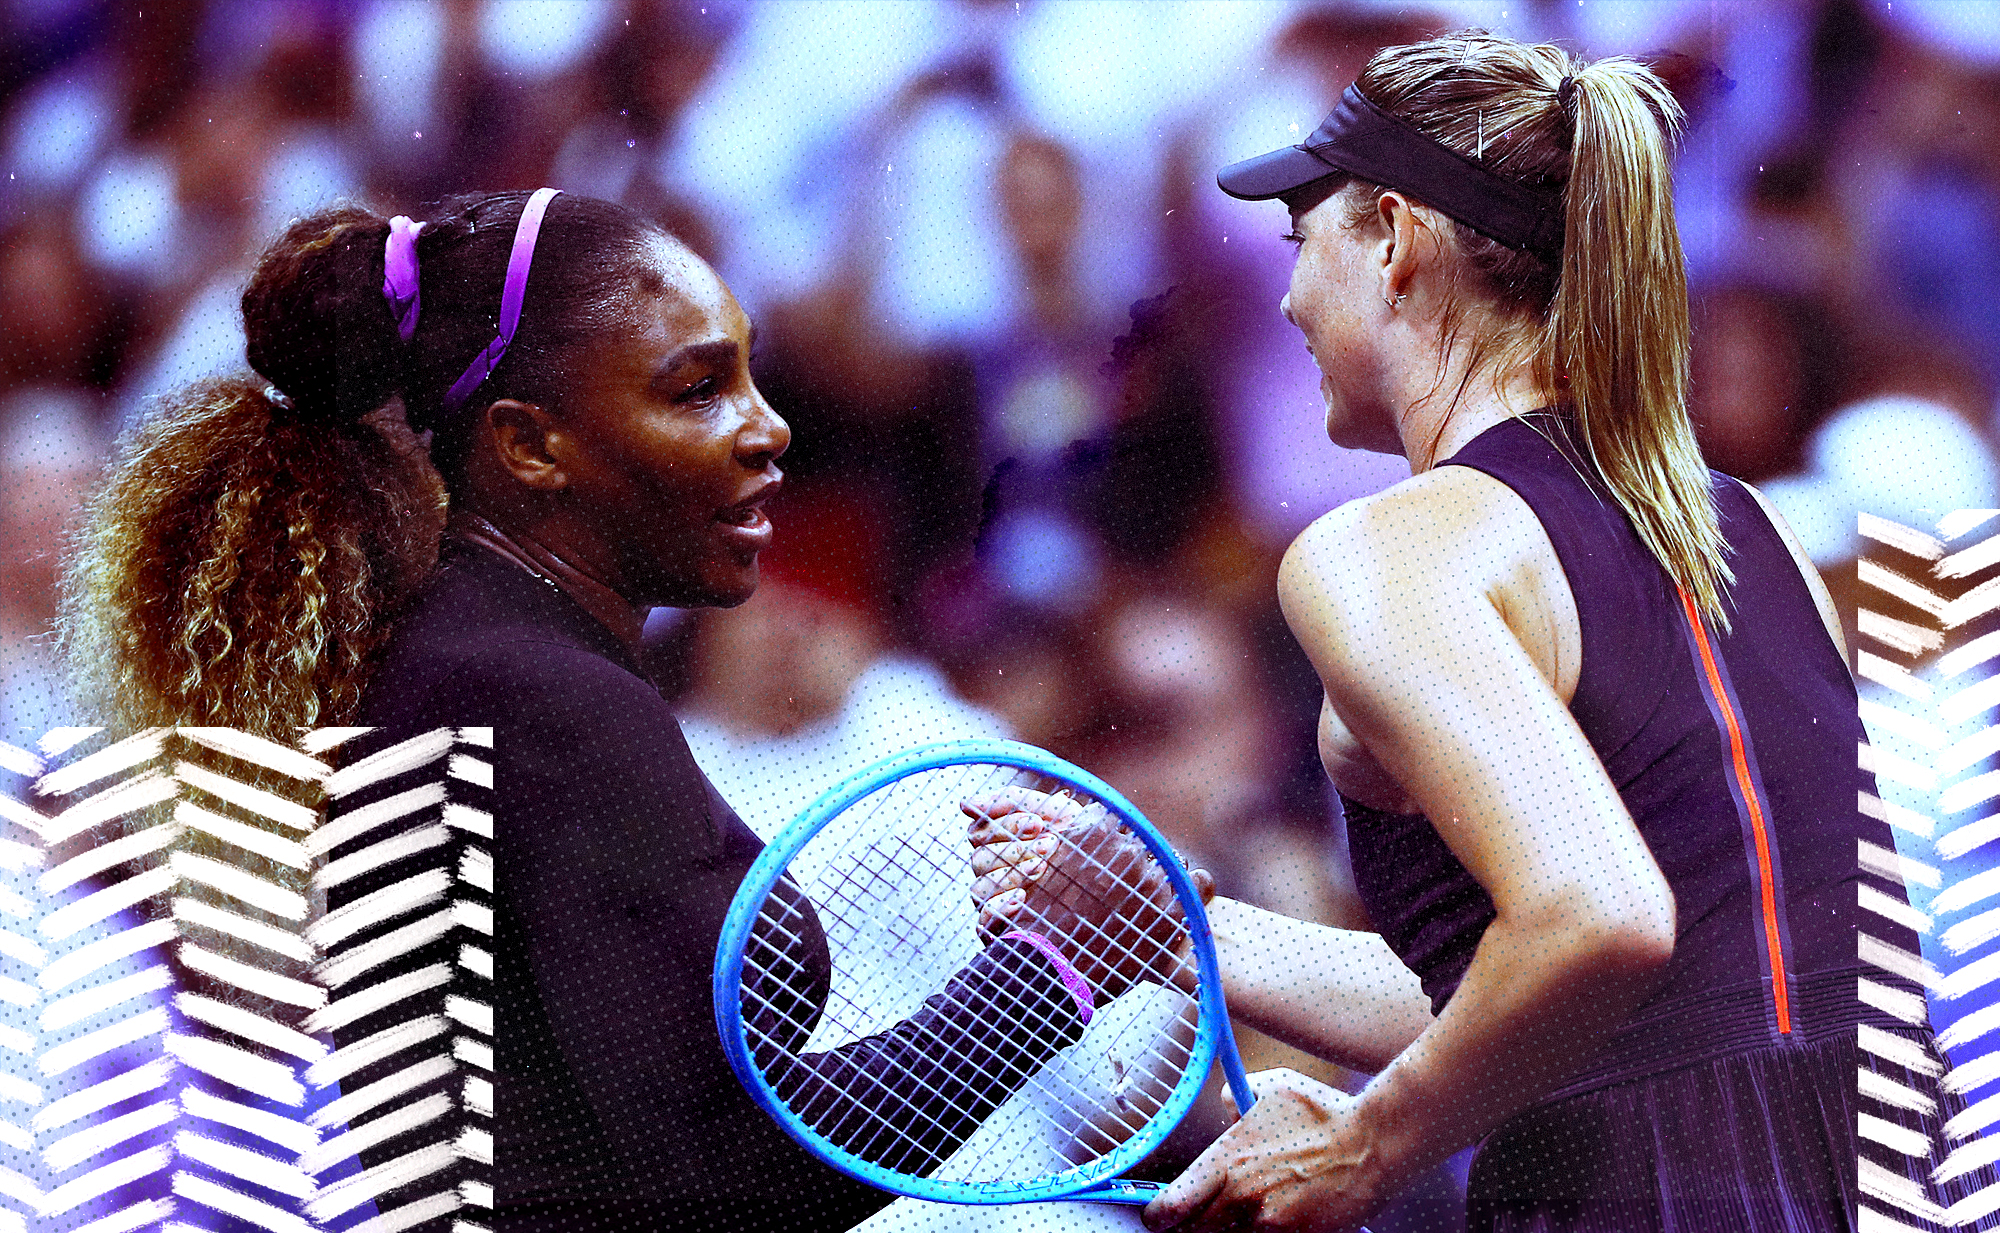 Serena Williams and Maria Sharpova at the U.S. Open. They're rivals ... but not really.